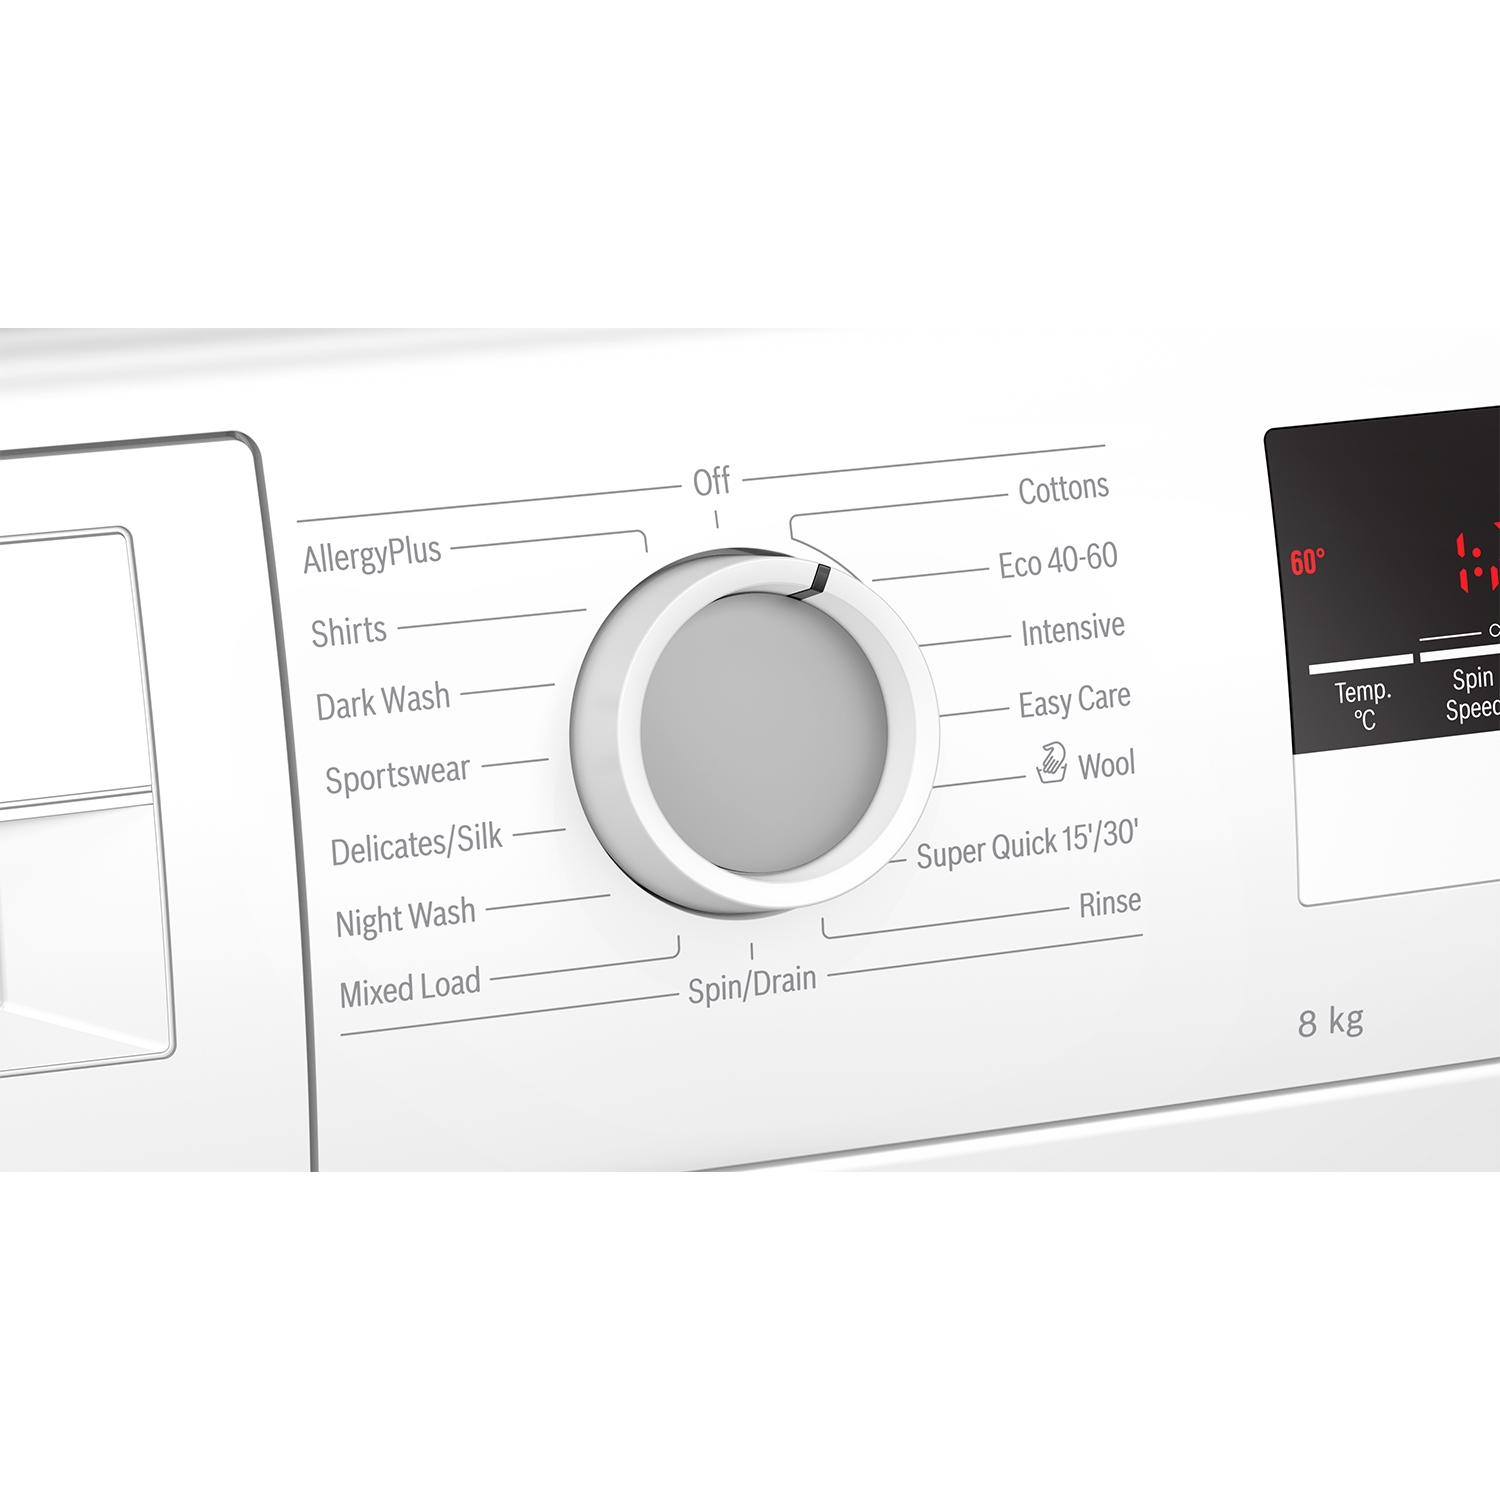 Bosch 8kg 1400 Spin Washing Machine - White - A+++ Rated - 2